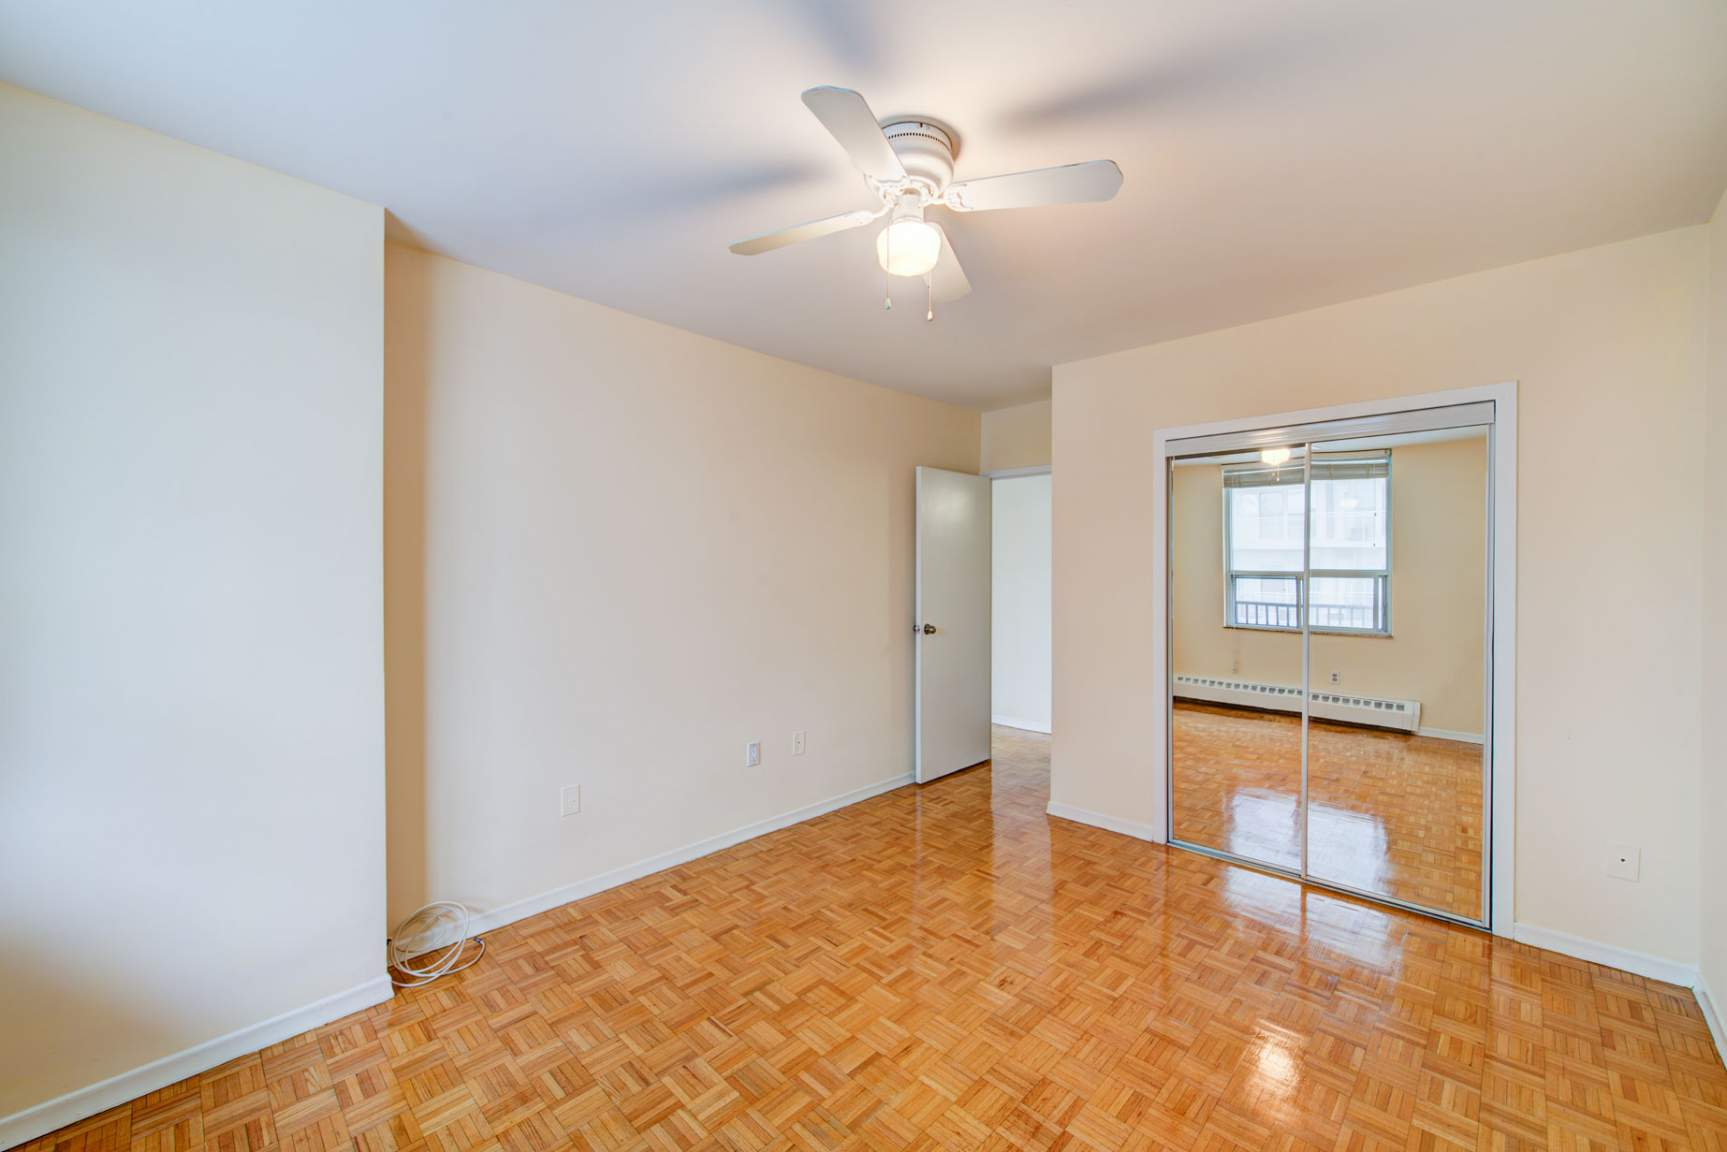 Studio / Bachelor Apartments for rent in Toronto at Redpath Tower - Photo 13 - RentersPages – L400652